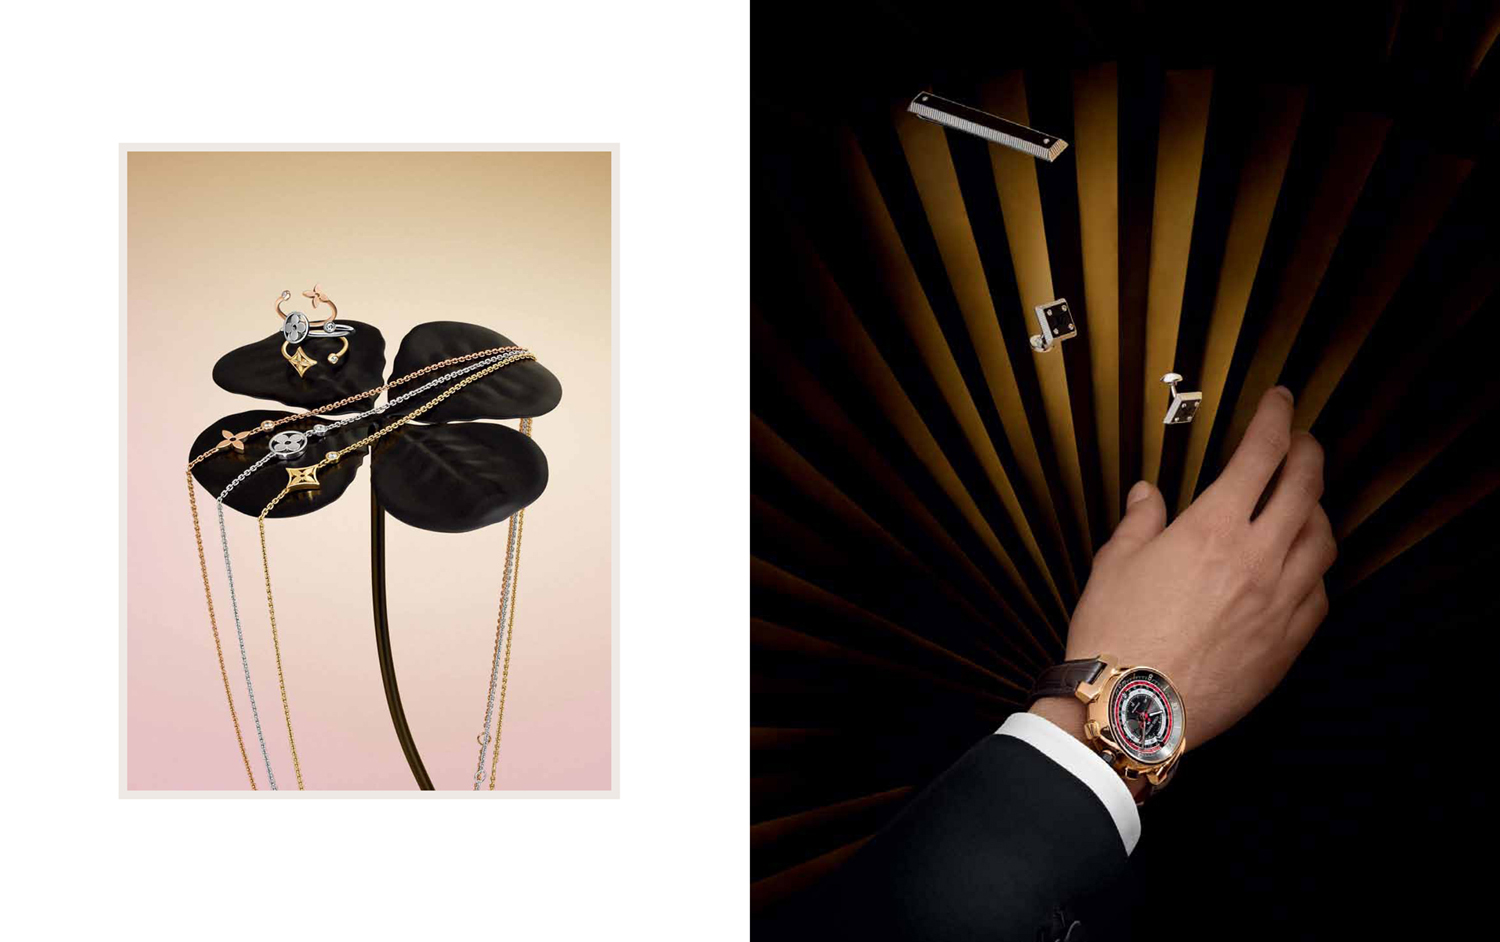 Magnus-Naddermier-Louis-Vuitton_XMAS12_Brochure-Photo-Toby-McFarlan-Pond-04.jpg